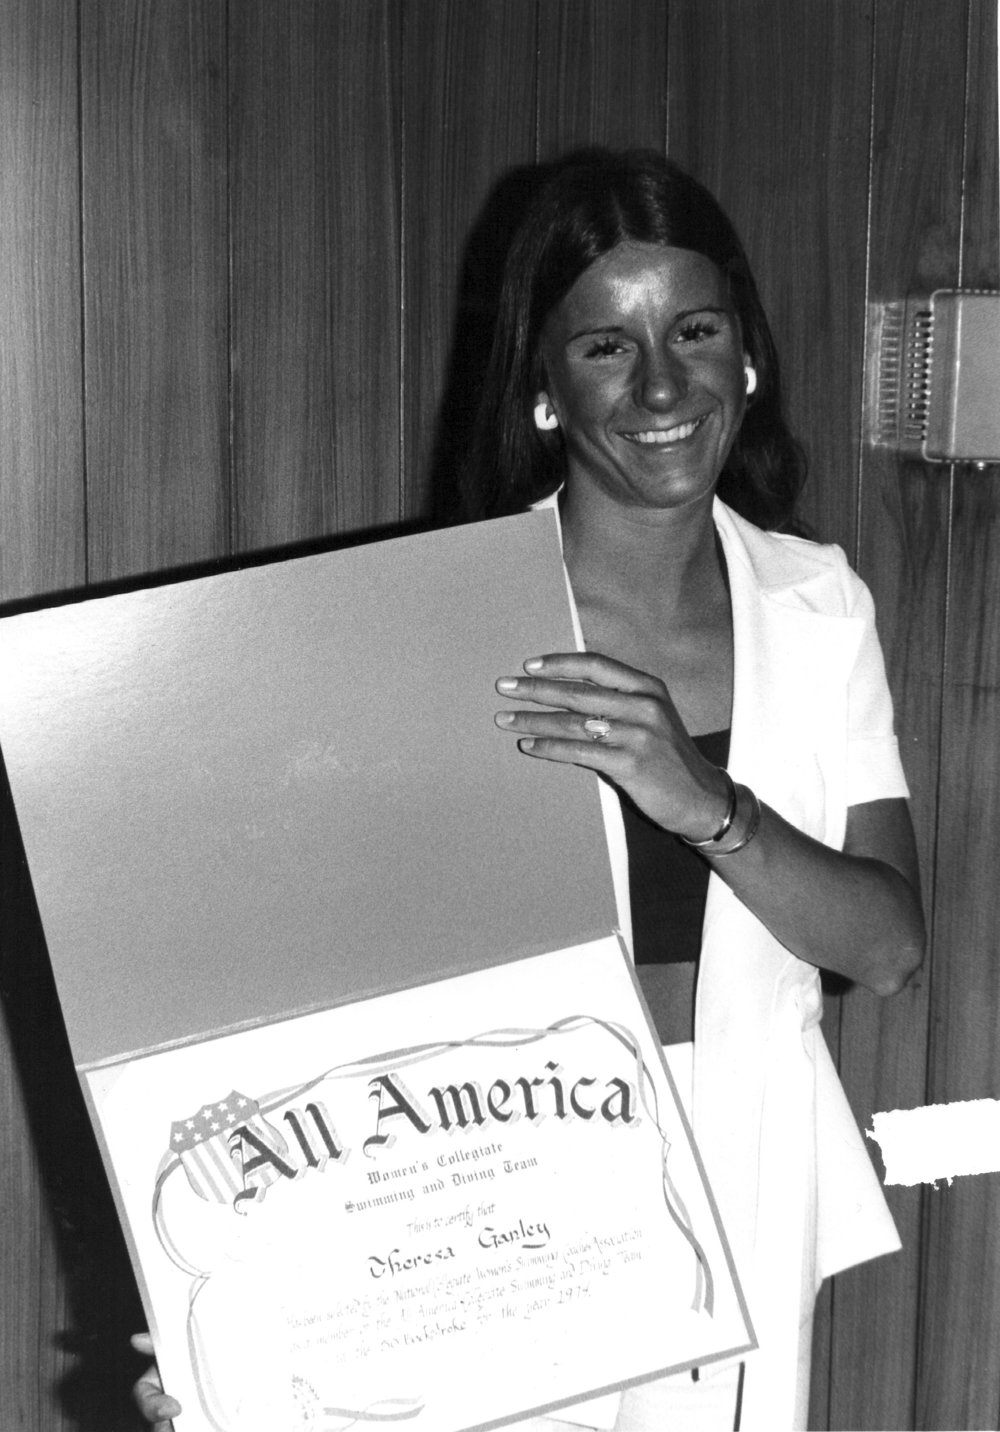 Ganley with her first All-America award in 1974. She was the first female All-American in any sport.